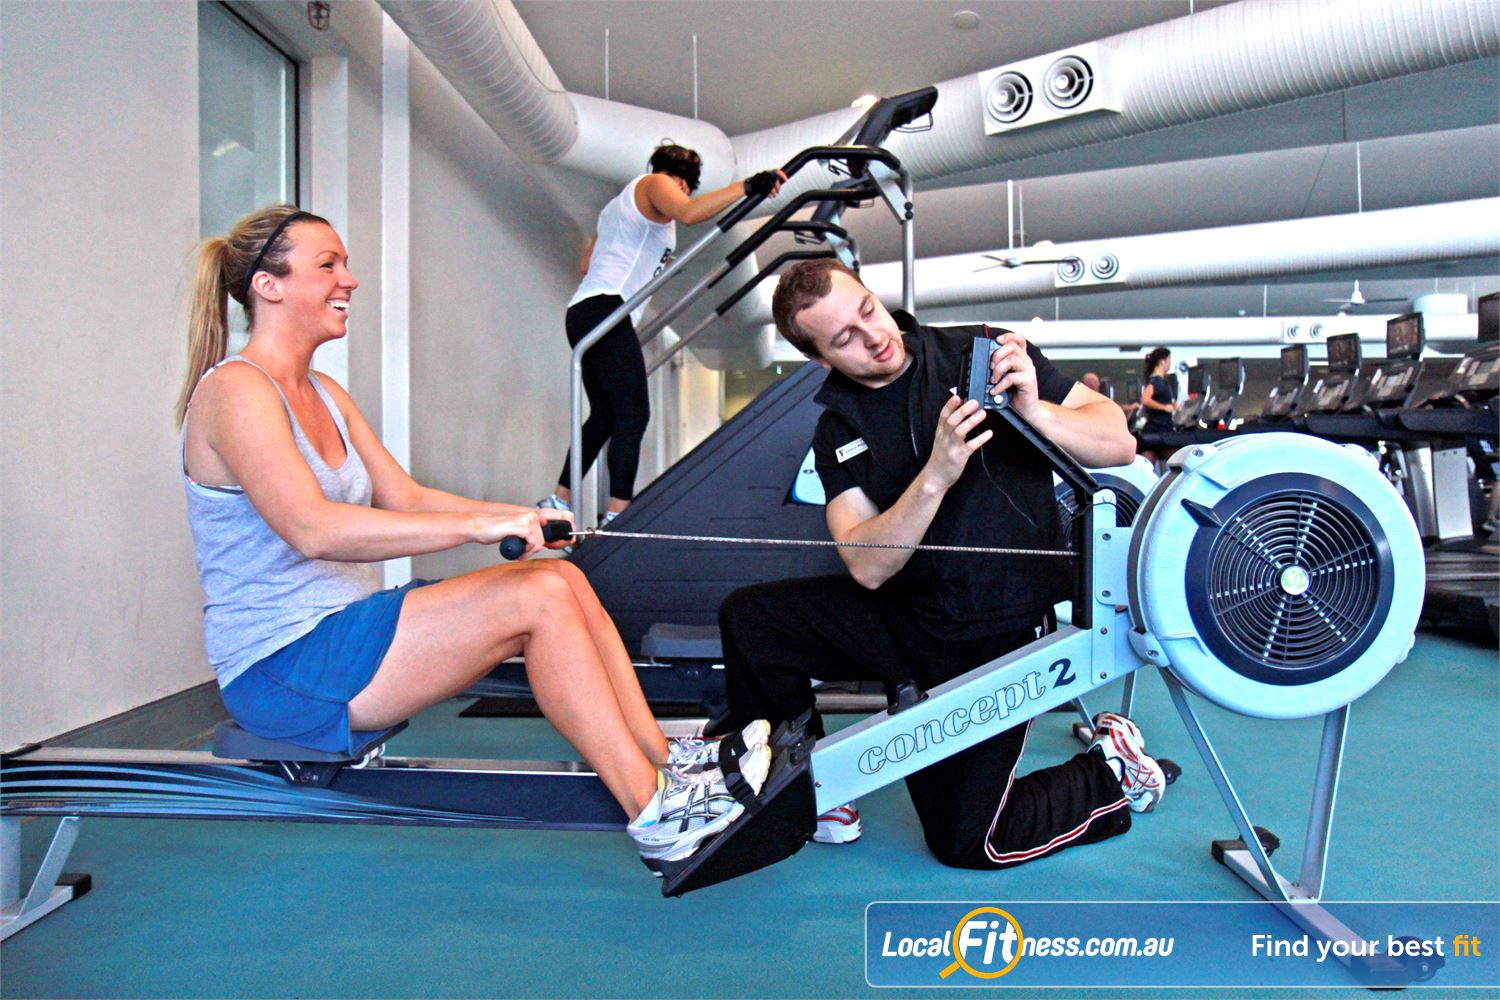 Ascot Vale Leisure Centre Ascot Vale Vary your cardio workout with indoor rowing in Ascot Vale.